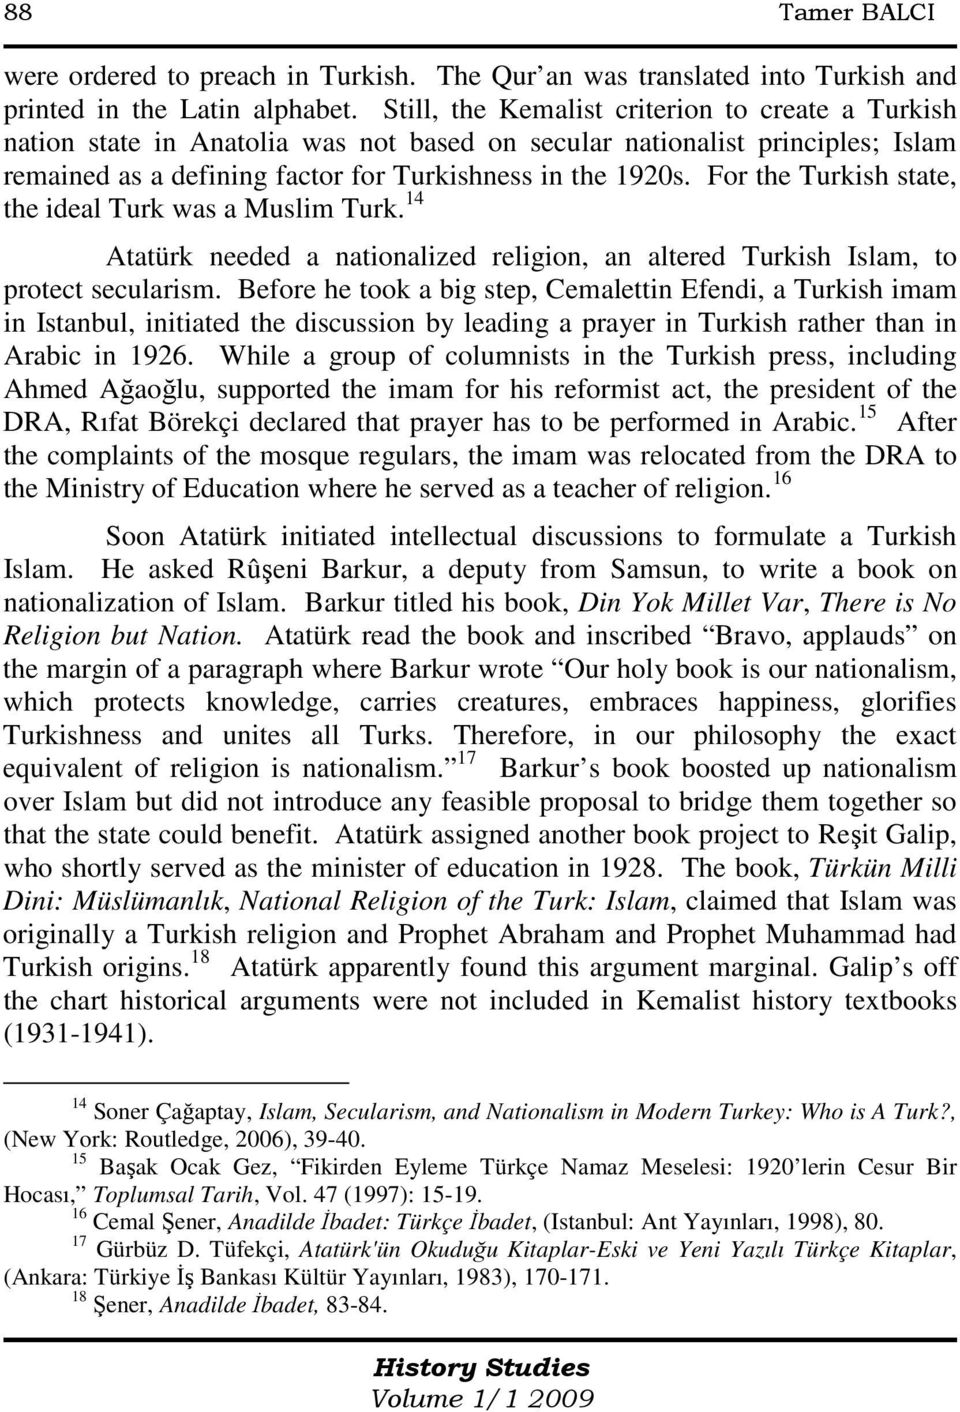 For the Turkish state, the ideal Turk was a Muslim Turk. 14 Atatürk needed a nationalized religion, an altered Turkish Islam, to protect secularism.